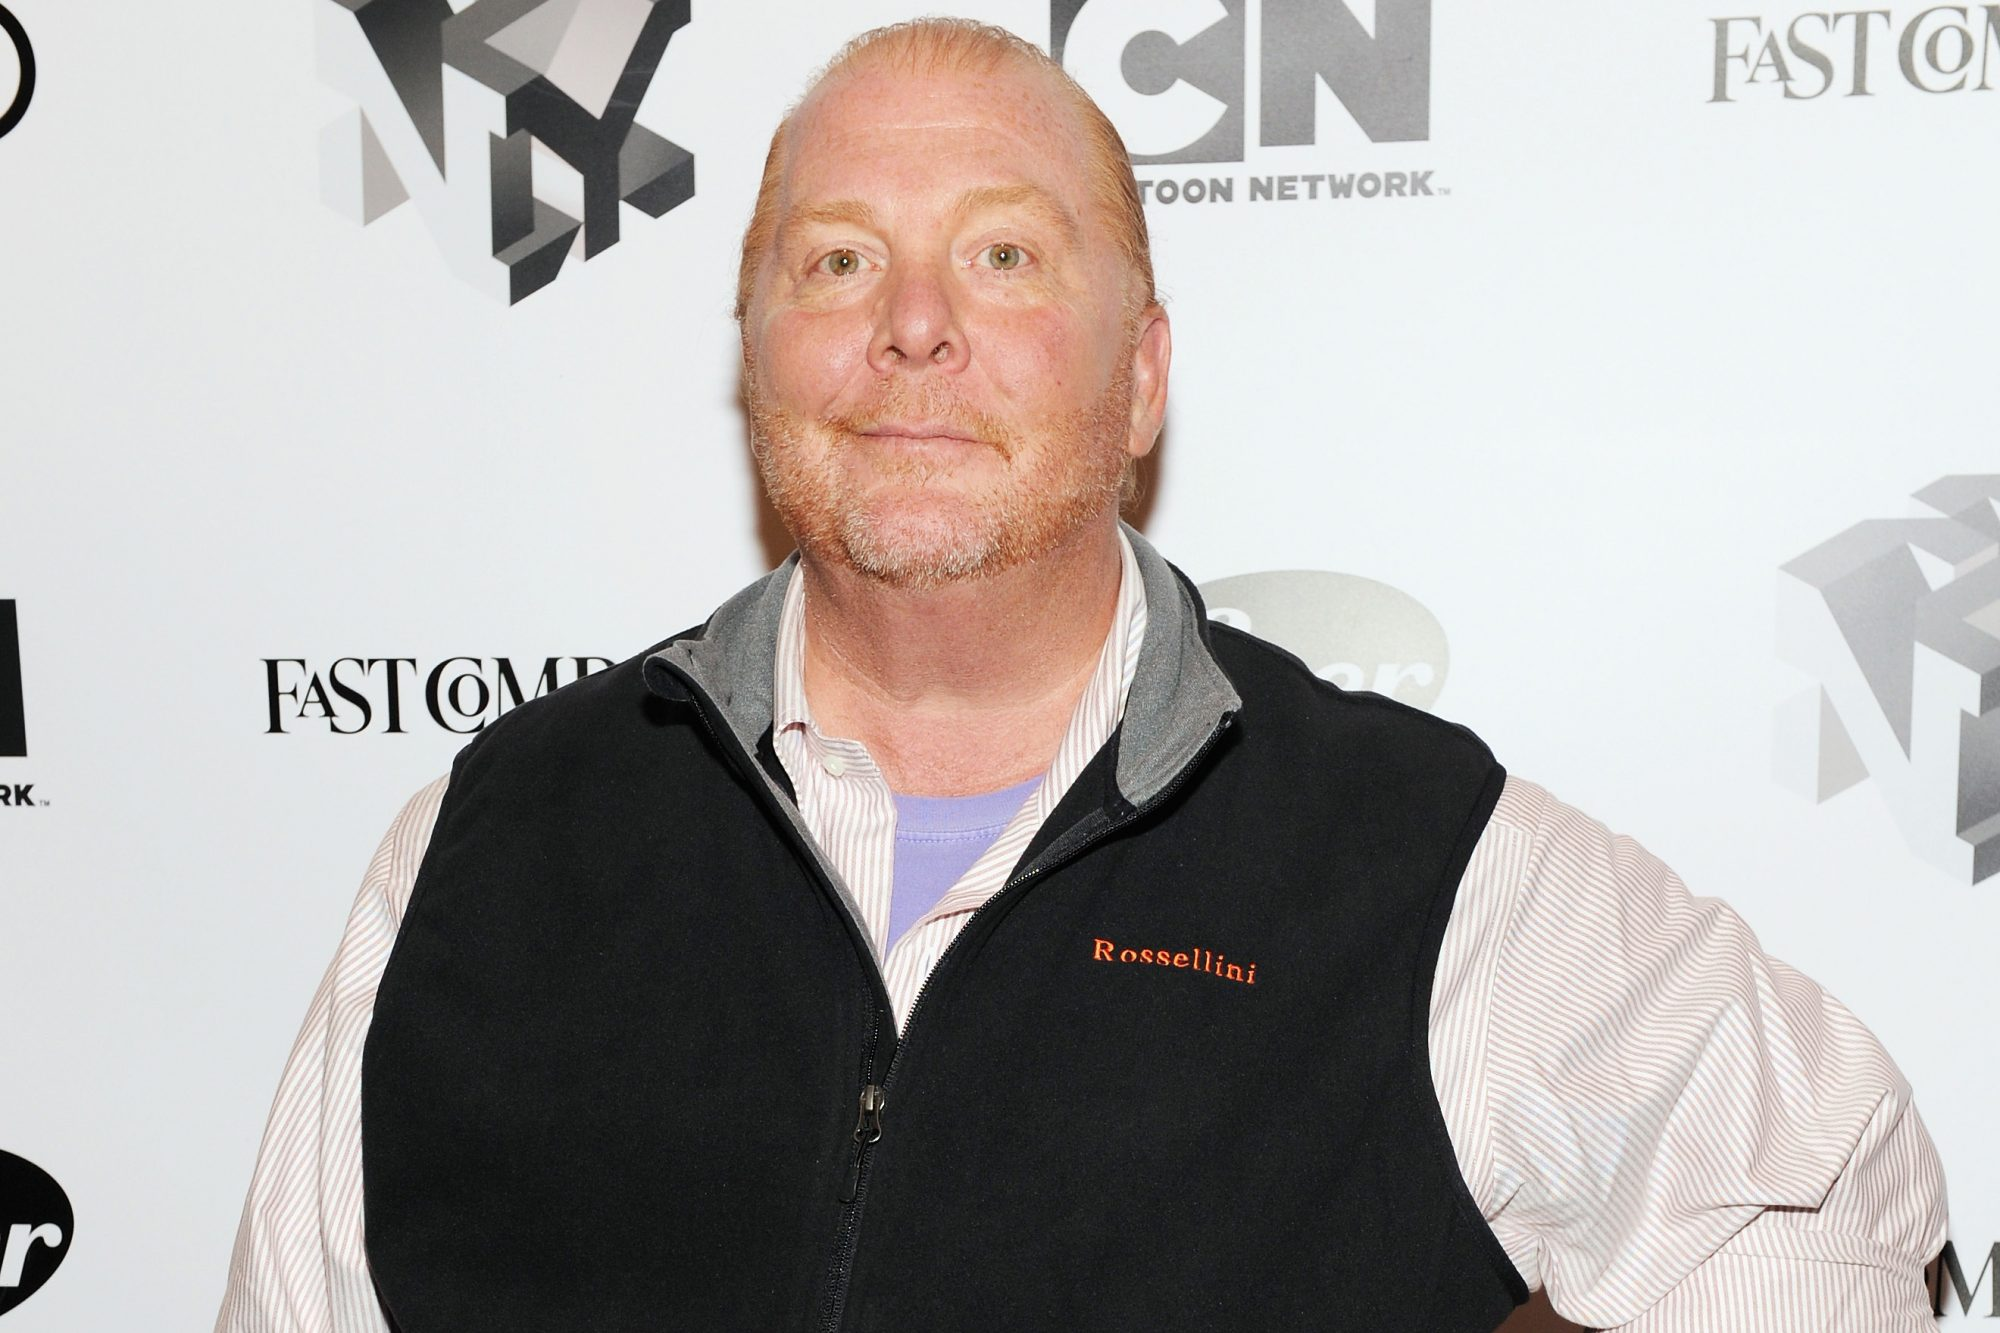 Mario Batali's Sexual Misconduct Reckoning Continues